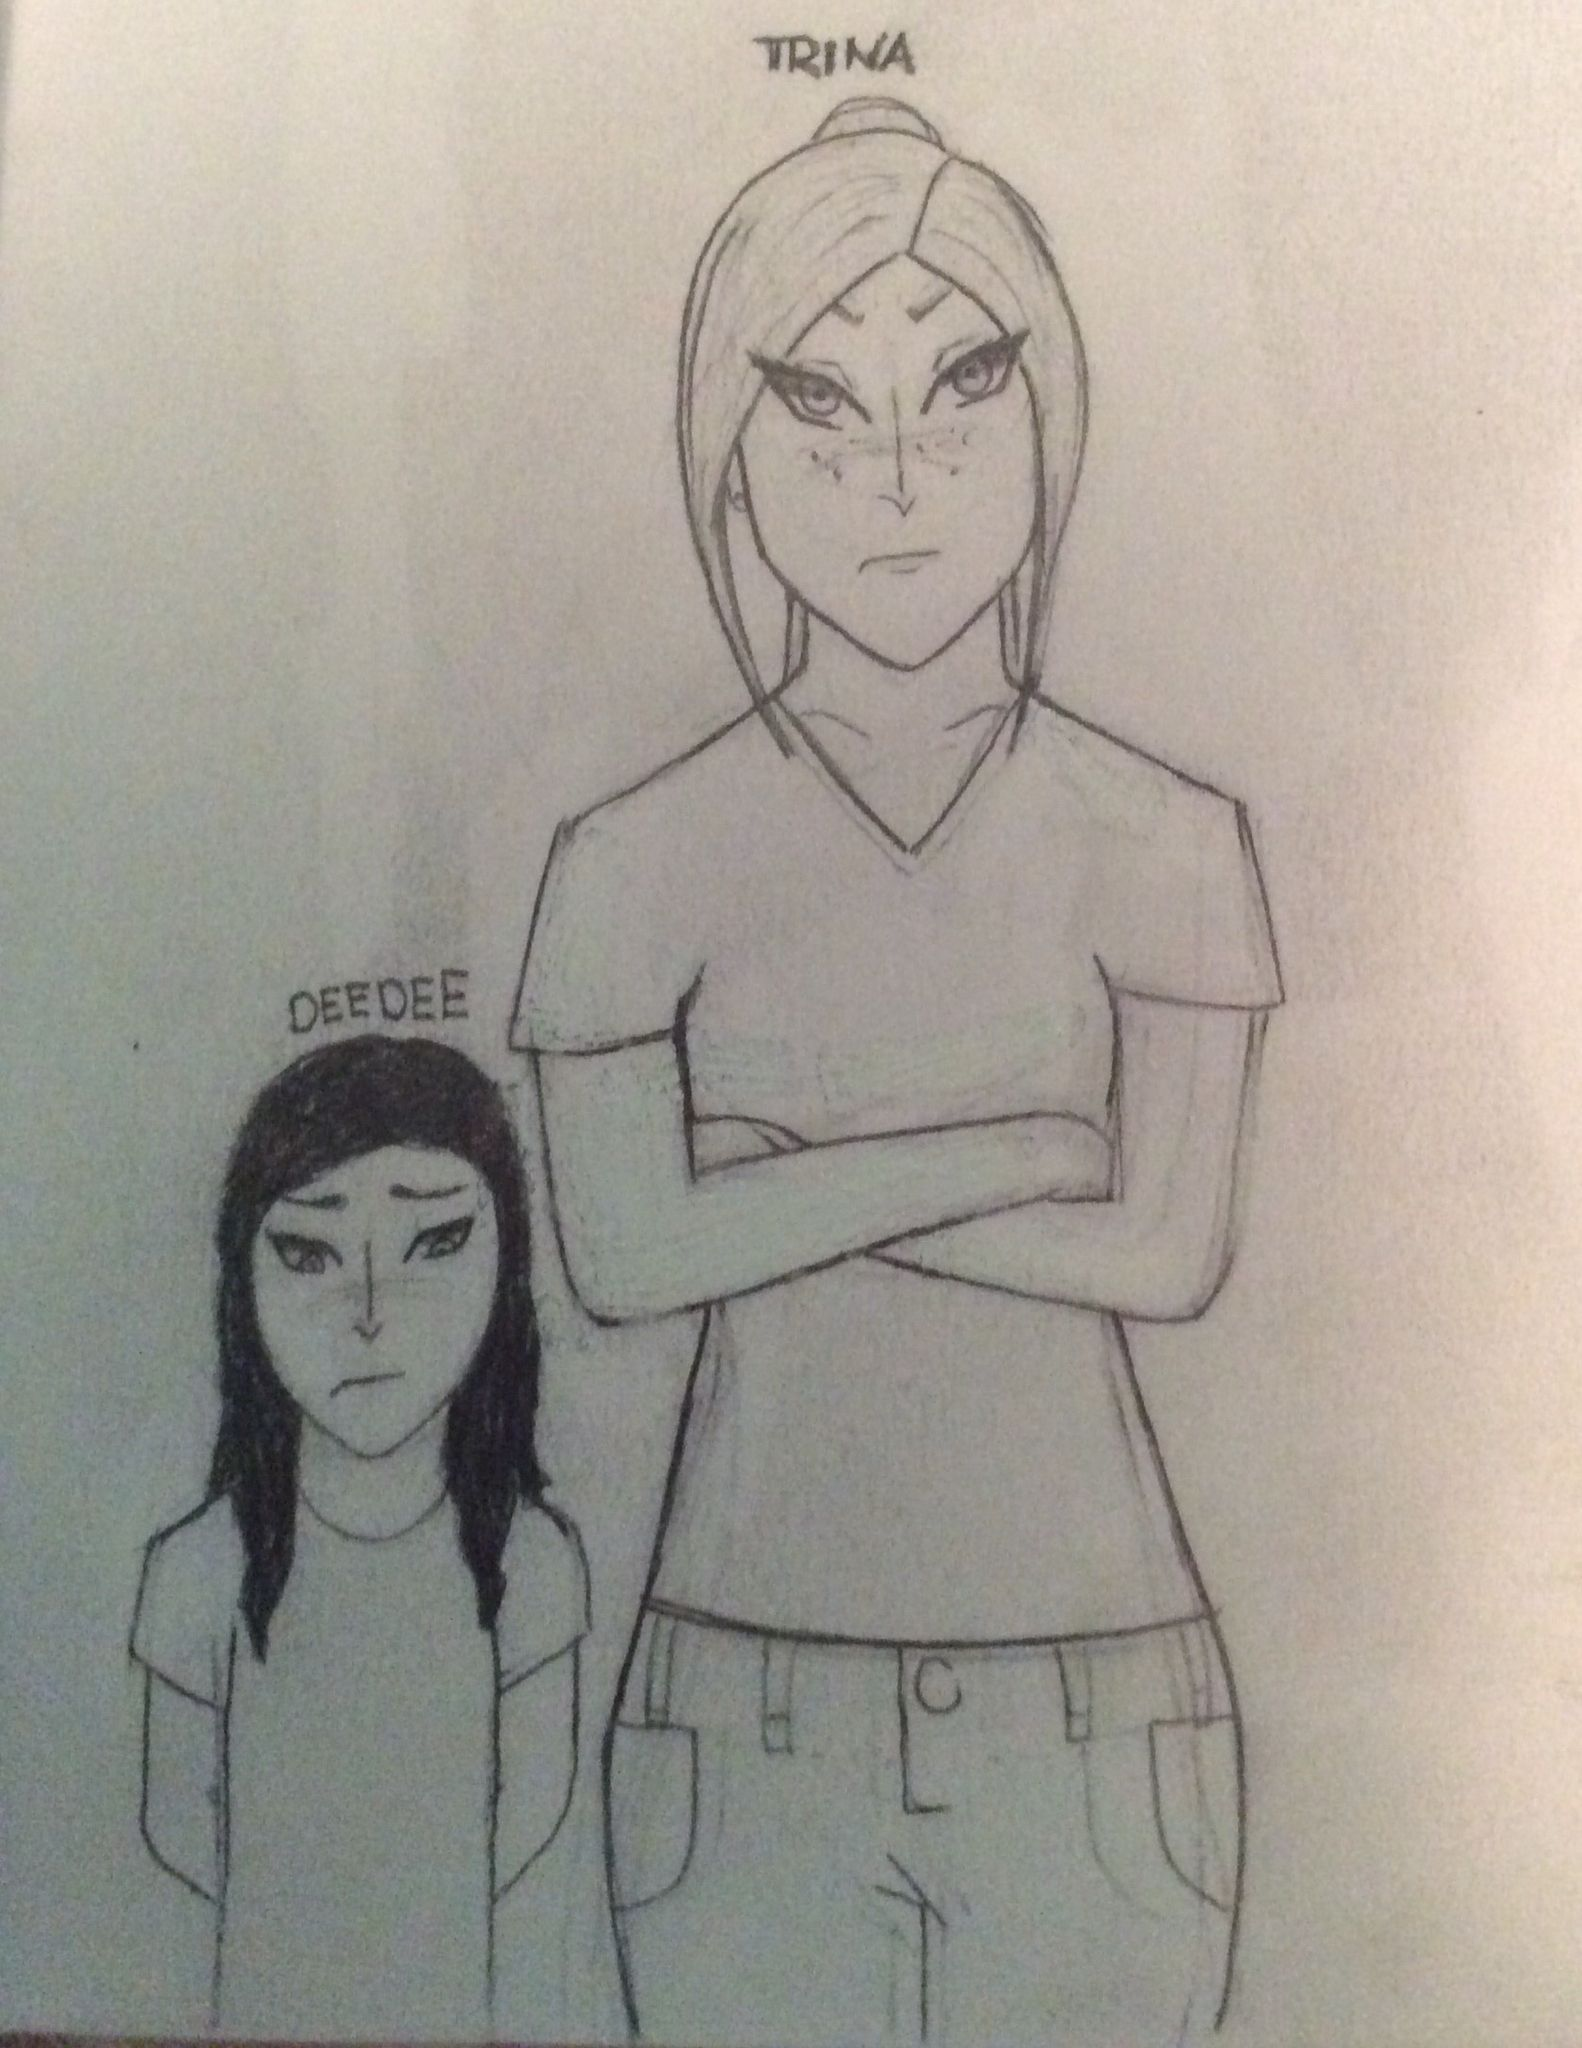 Heres a little drawing of trina and deedee from the maze